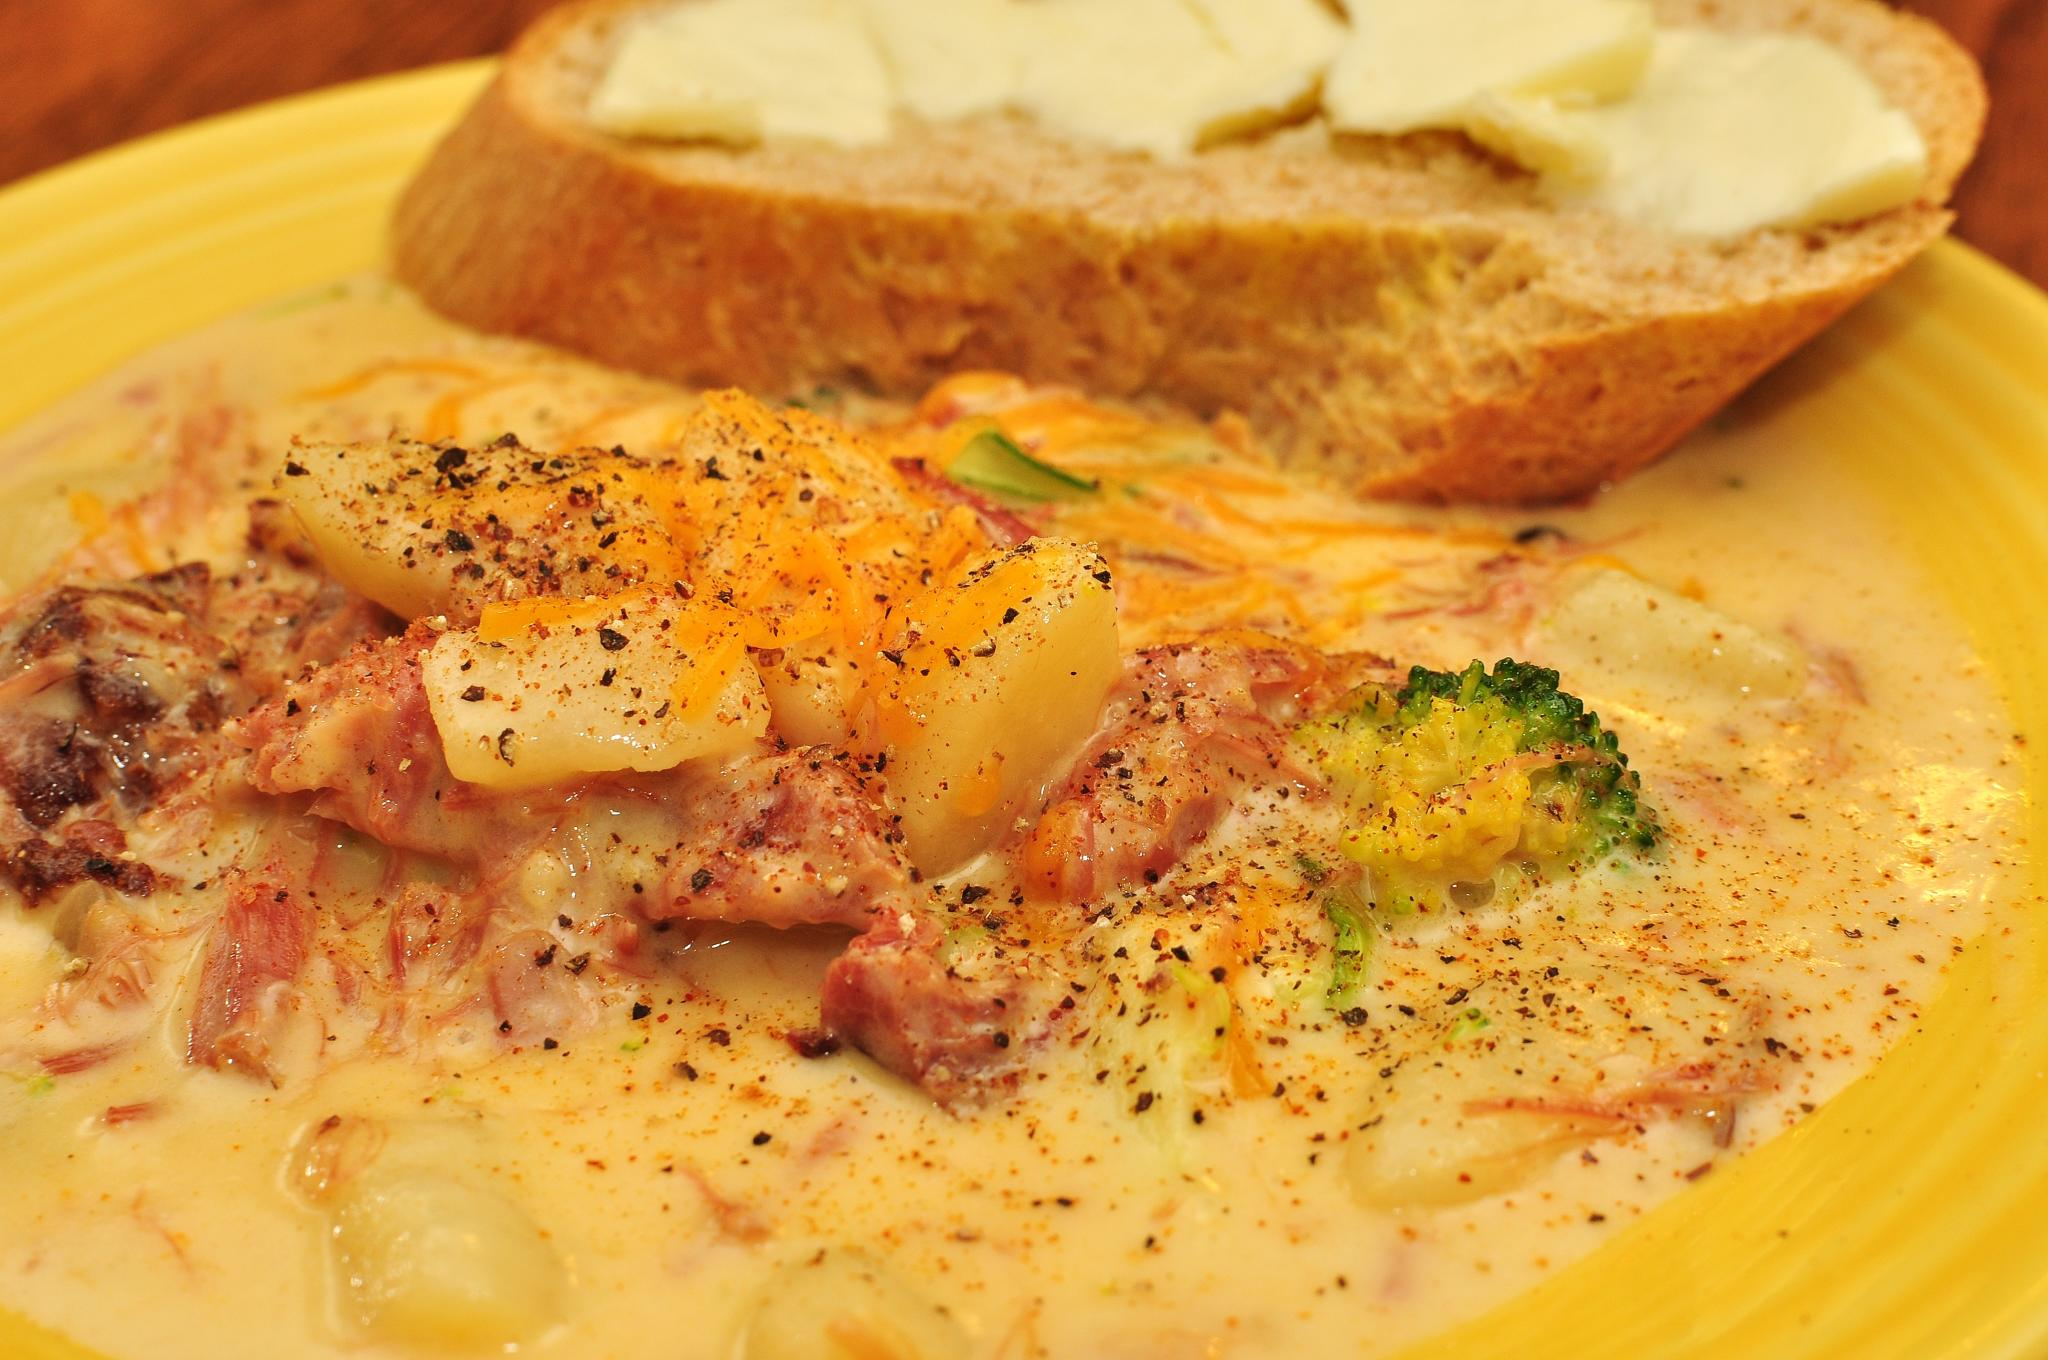 File:Mmm... cheesy potato soup (6846314201).jpg - Wikimedia Commons